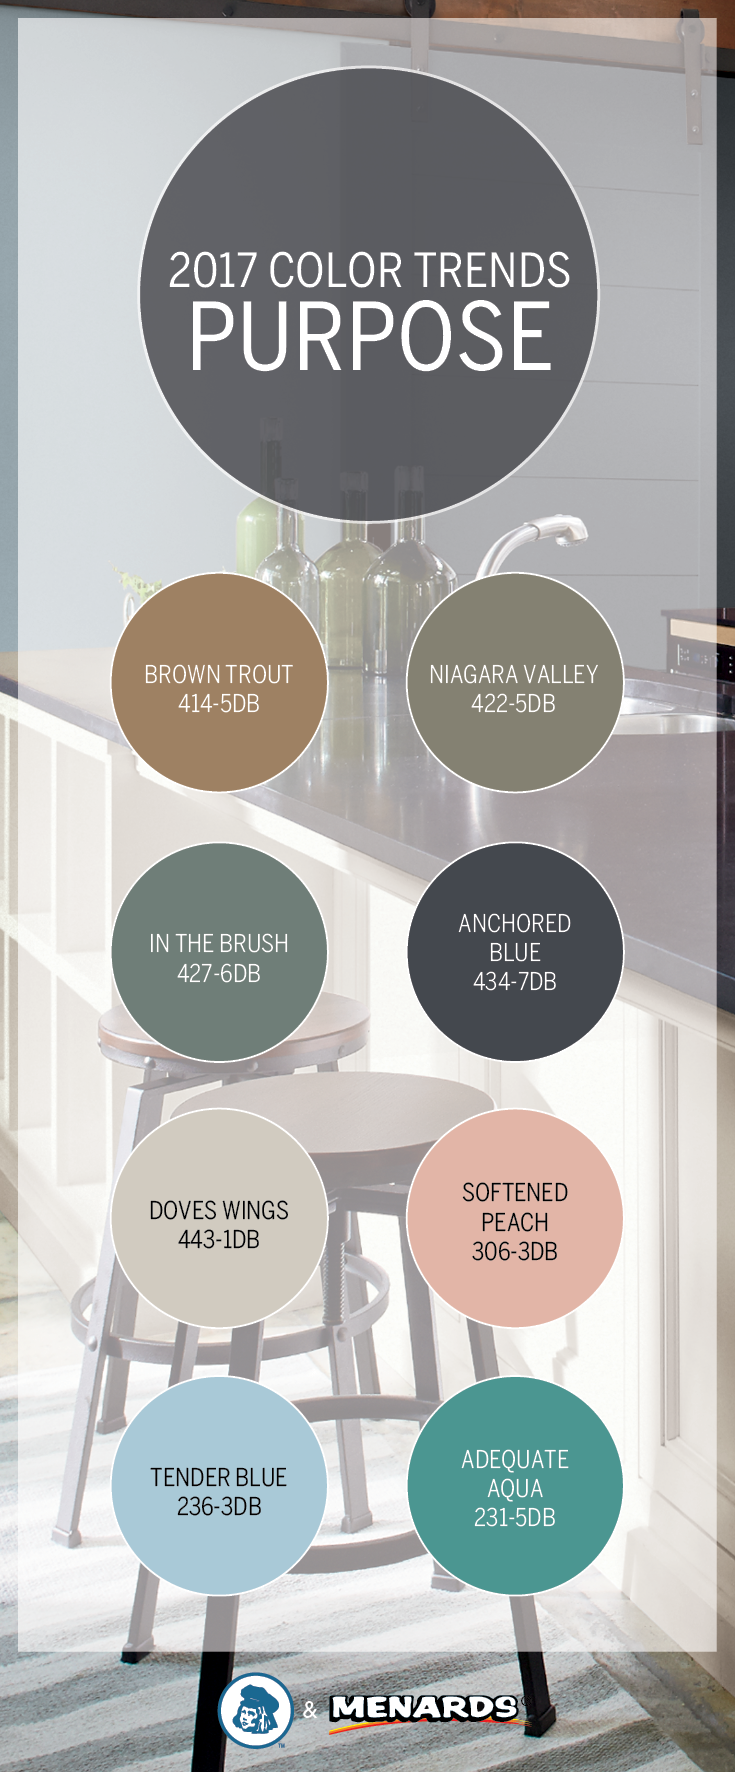 dutch boy exterior paint dry time. the dutch boy® purpose color trend takes inspiration from aged metals and chic industrial style. exterior paint boy dry time